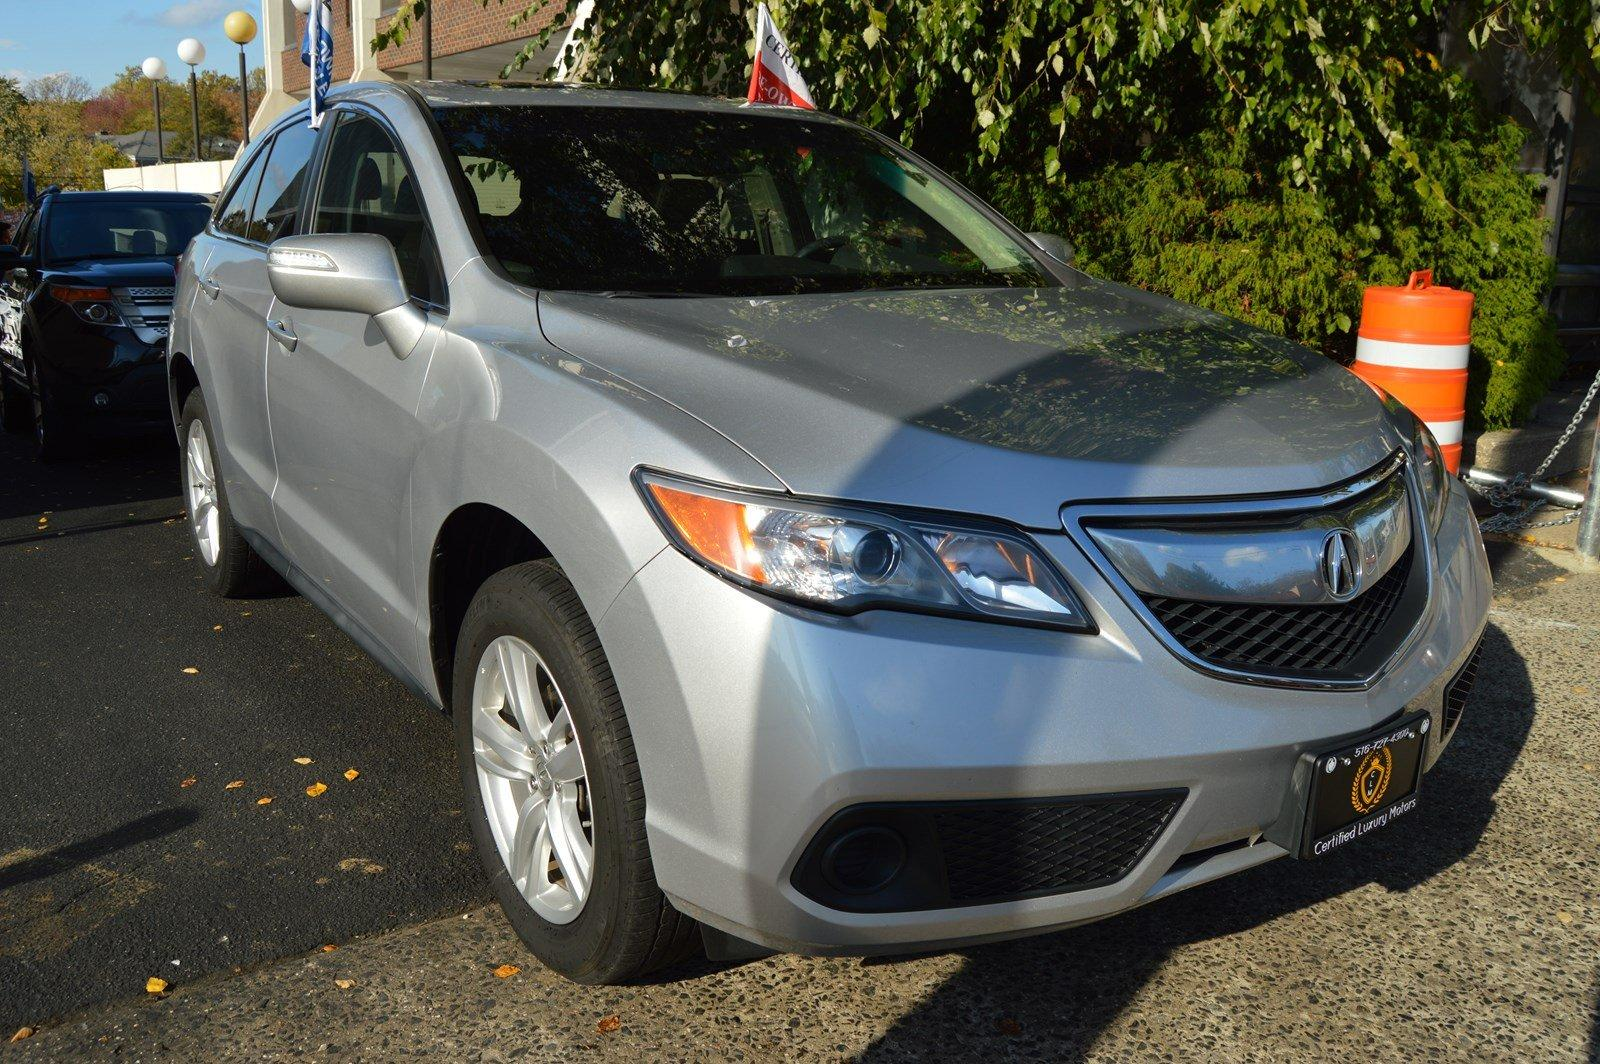 2015 acura rdx stock 0196 for sale near great neck ny ny acura dealer. Black Bedroom Furniture Sets. Home Design Ideas